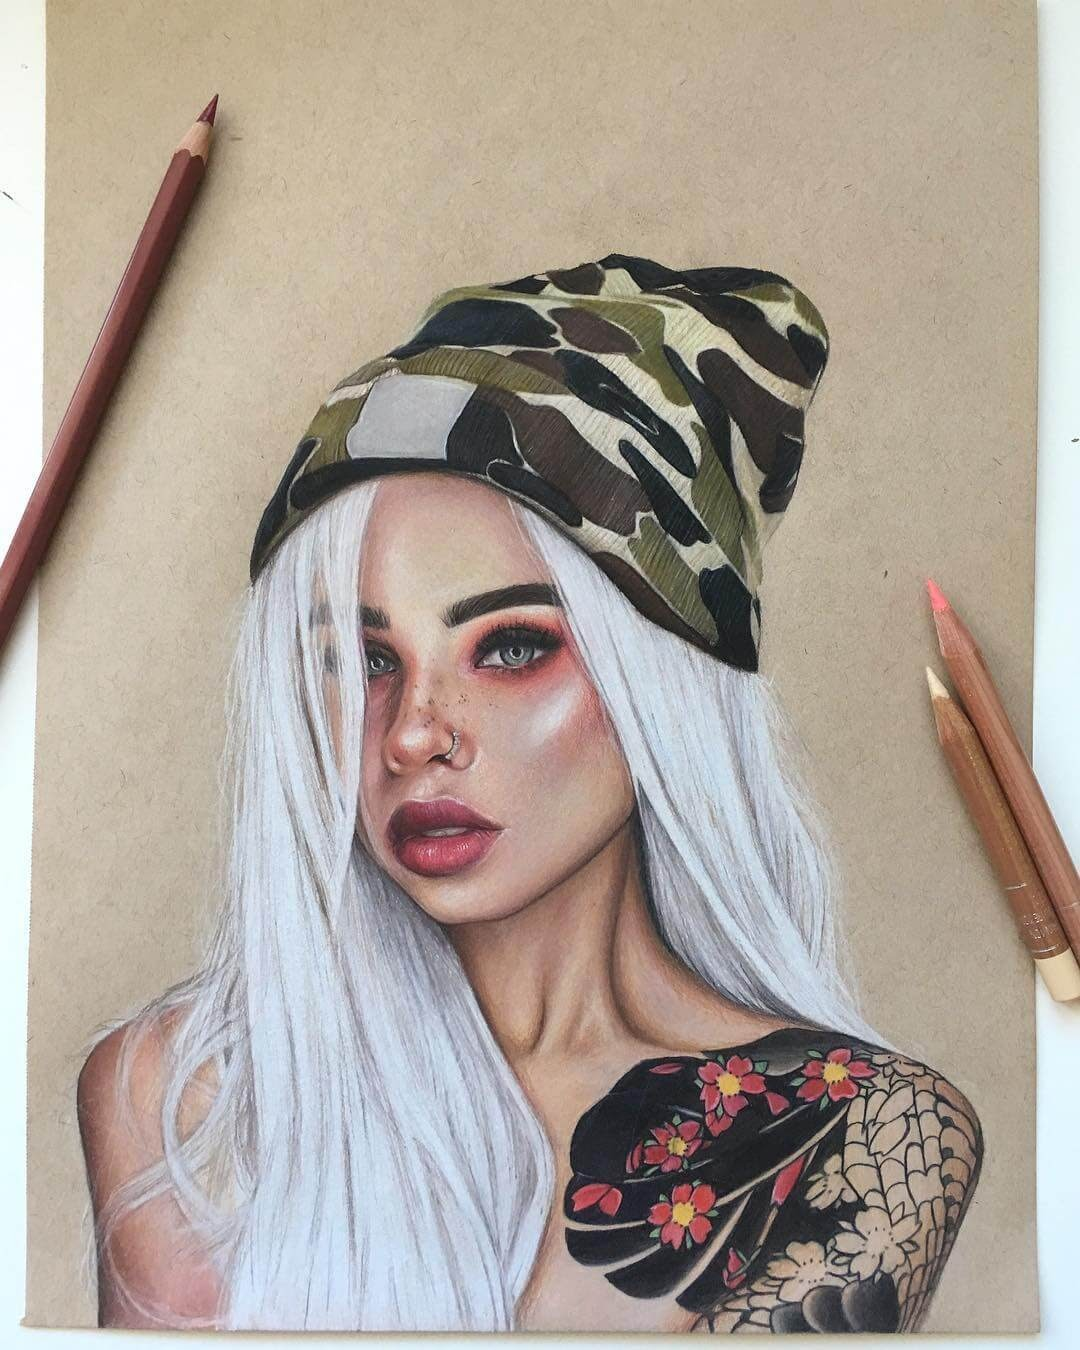 08-@snitchery-Jennifer-de-Boer-Pencil-Portraits-WIP-and-Complete-Drawings-www-designstack-co